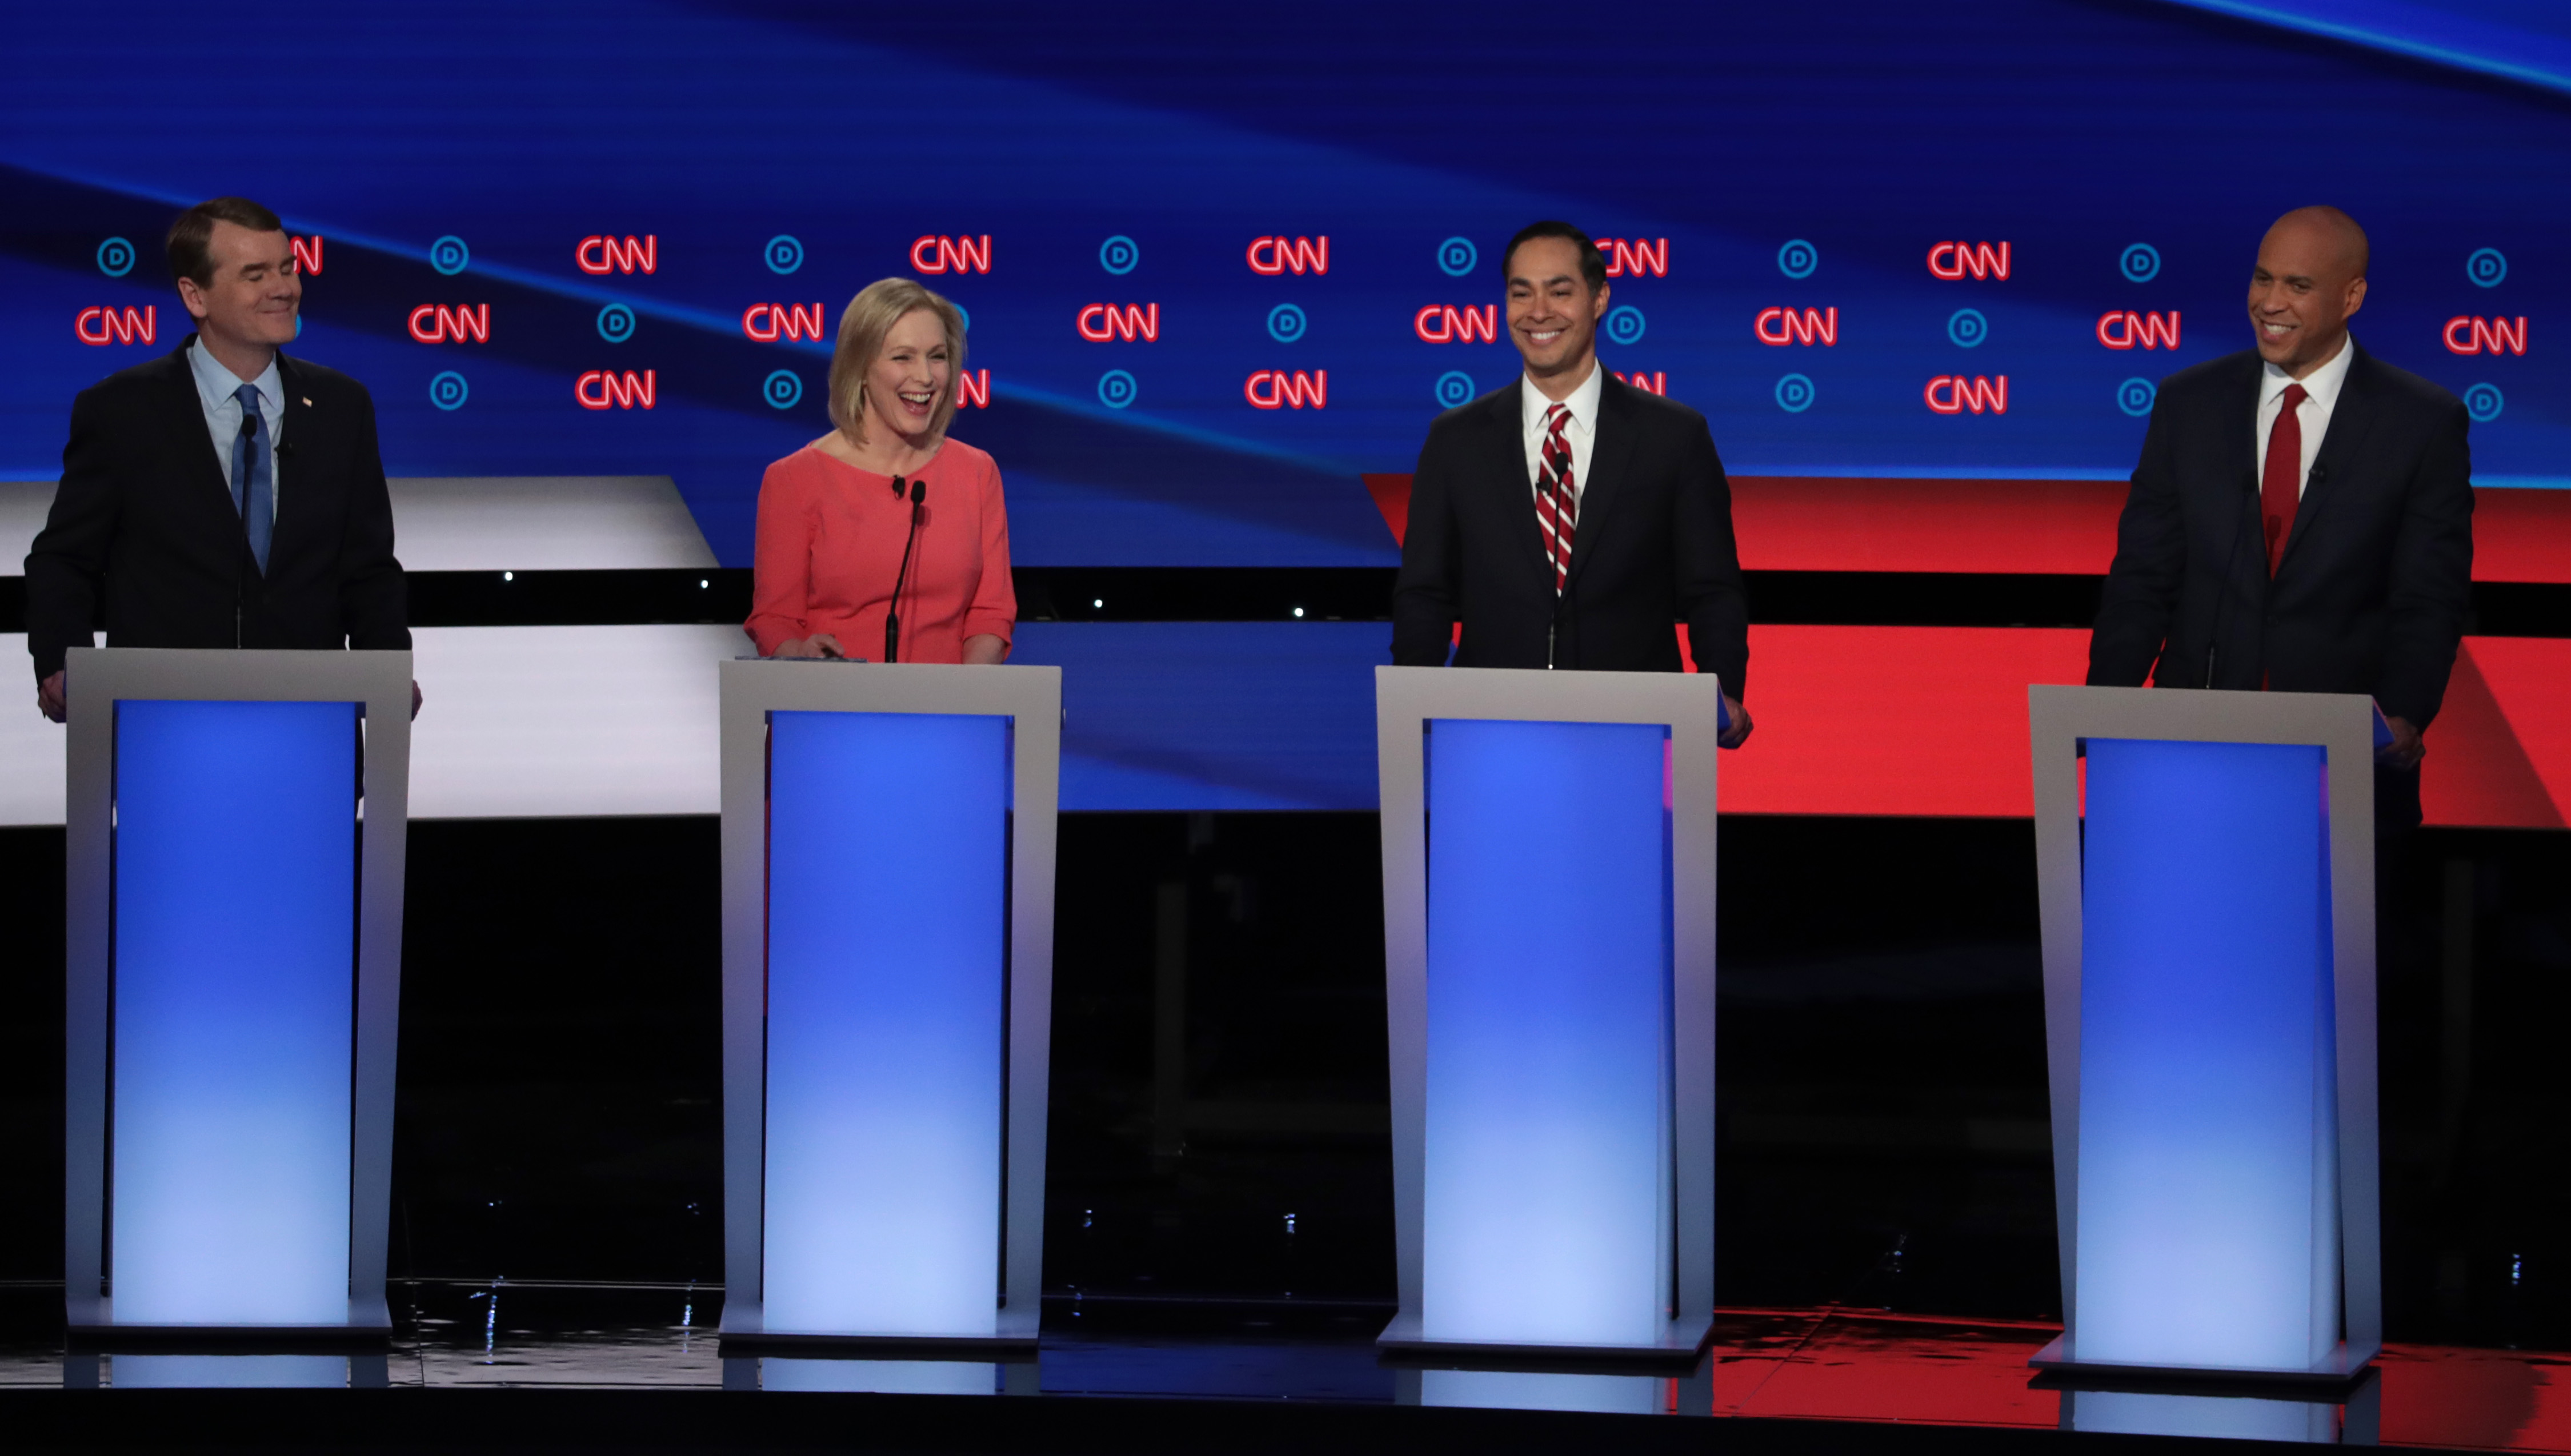 Democratic presidential candidates Sen. Michael Bennet (D-CO) (L-R), Sen. Kirsten Gillibrand (D-NY), former housing secretary Julian Castro, and Sen. Cory Booker (D-NJ) smile during the Democratic Presidential Debate at the Fox Theatre July 31, 2019 in Detroit, Michigan.